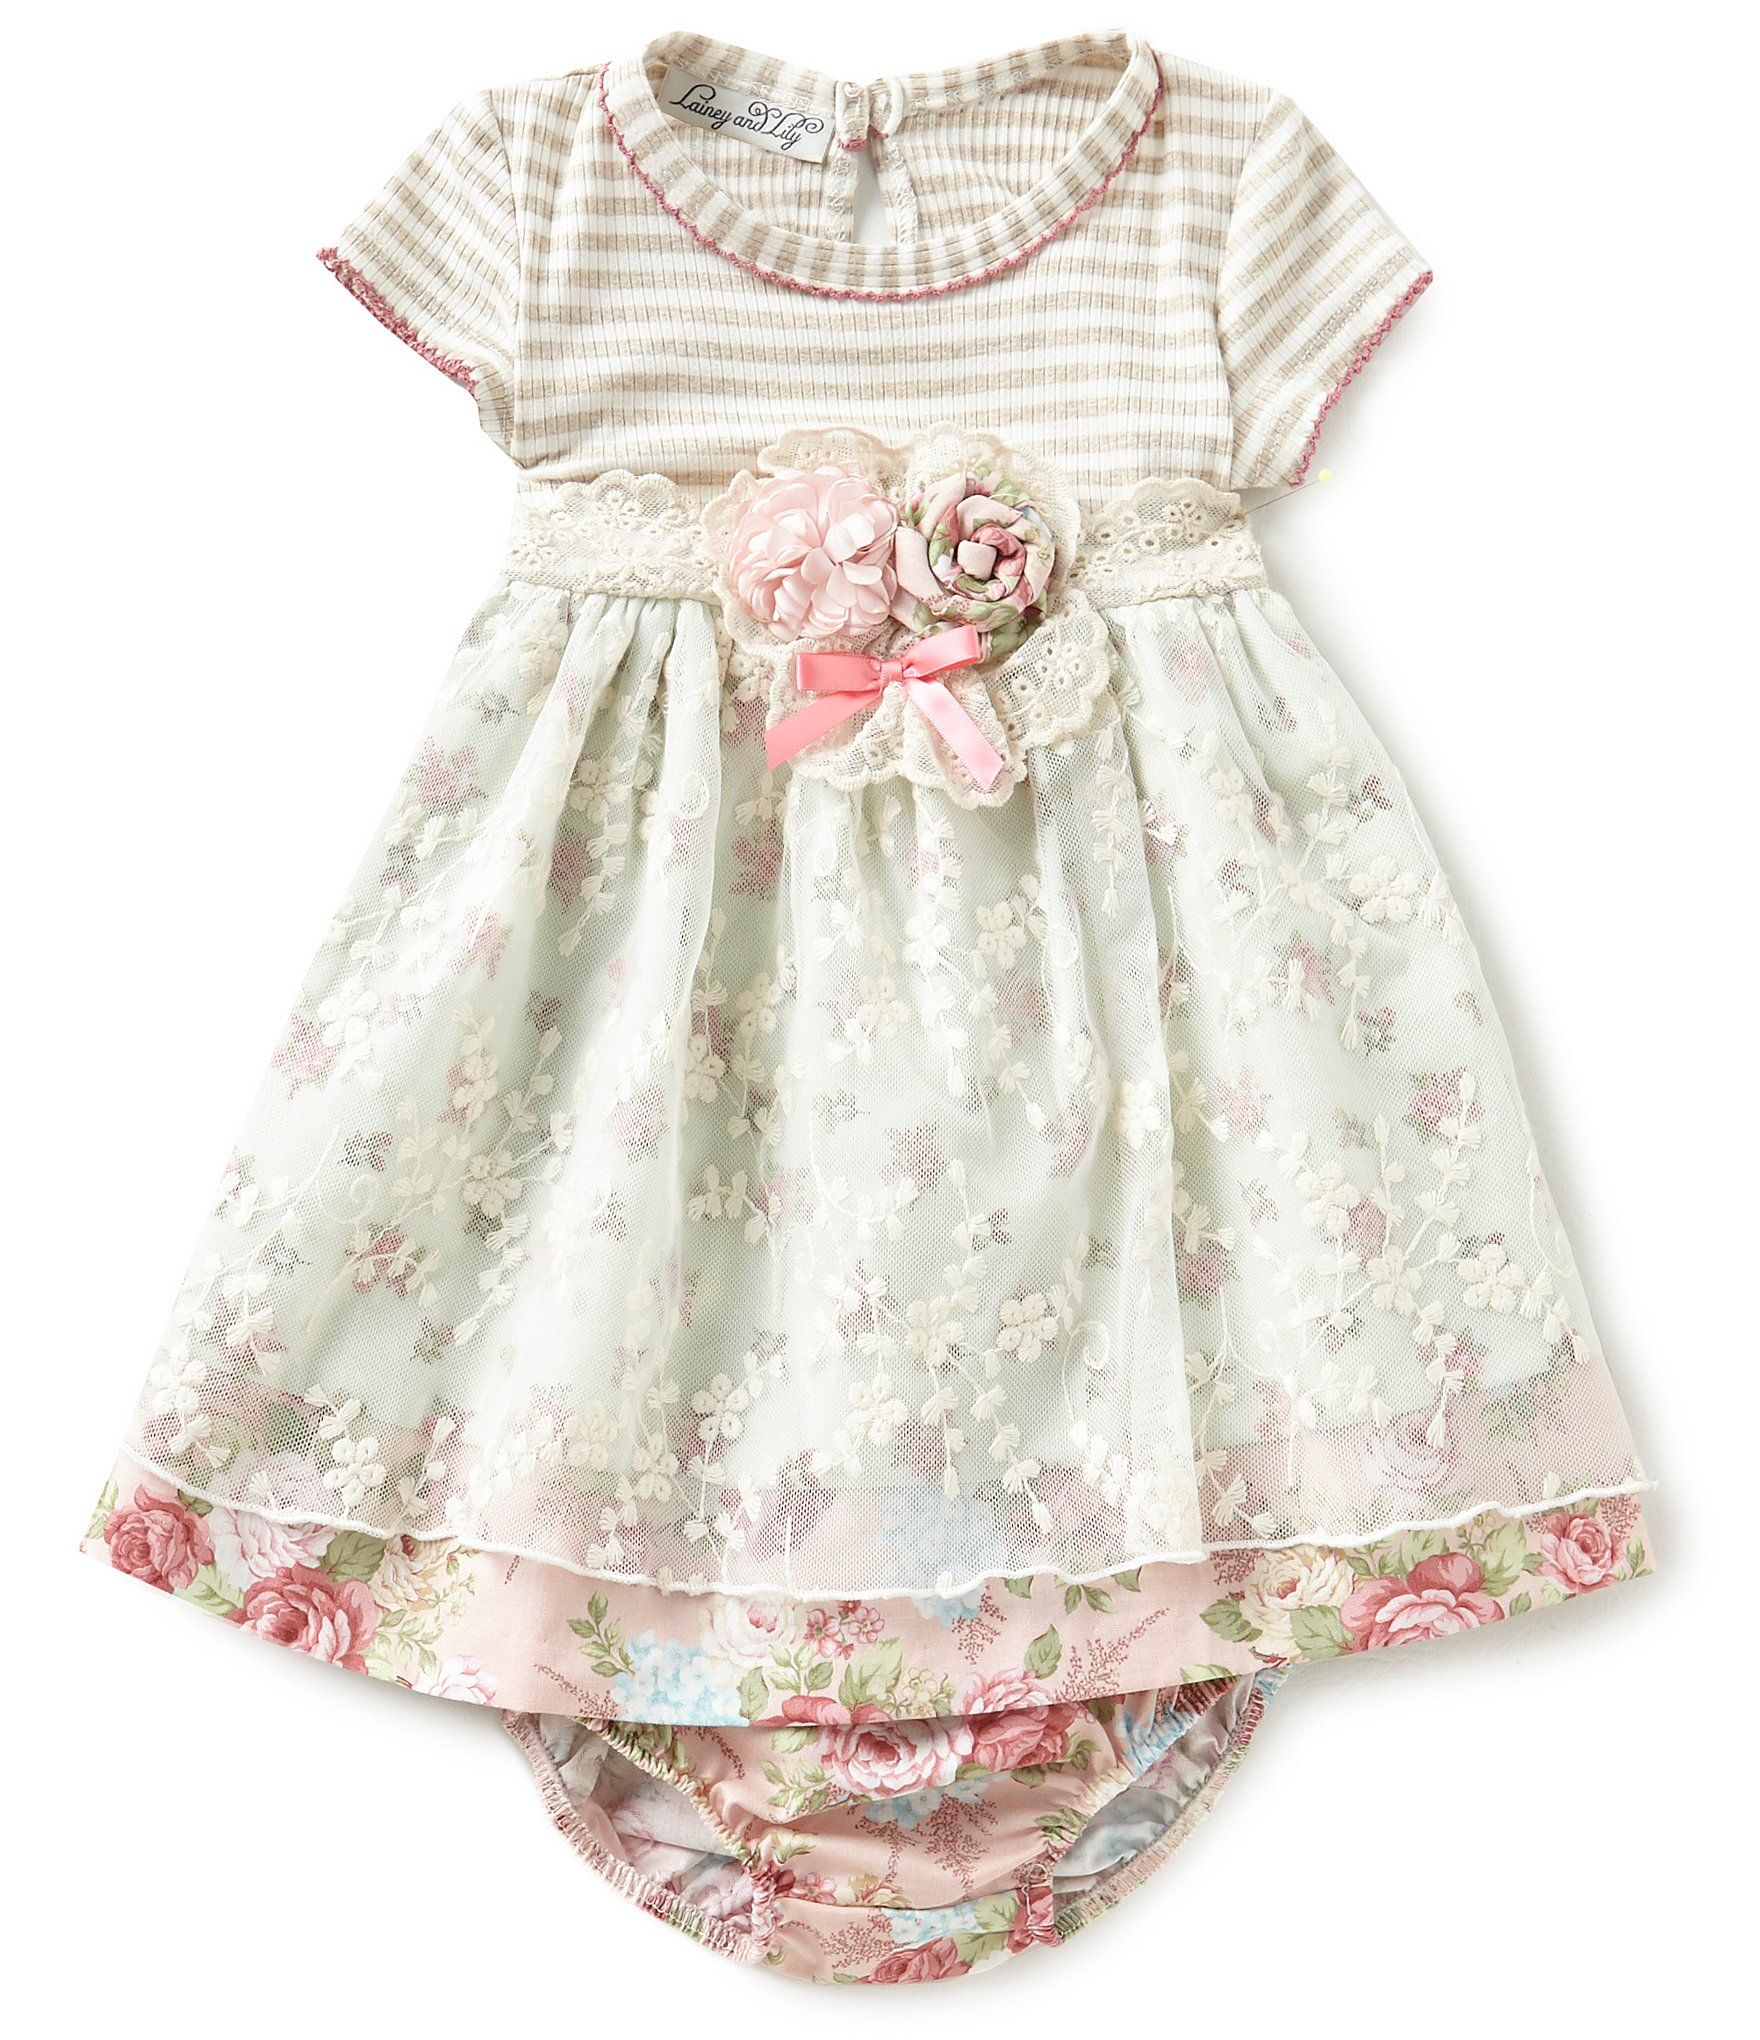 Shop for Lainey & Lily Baby Girls 12 24 Months Floral A Line Dress